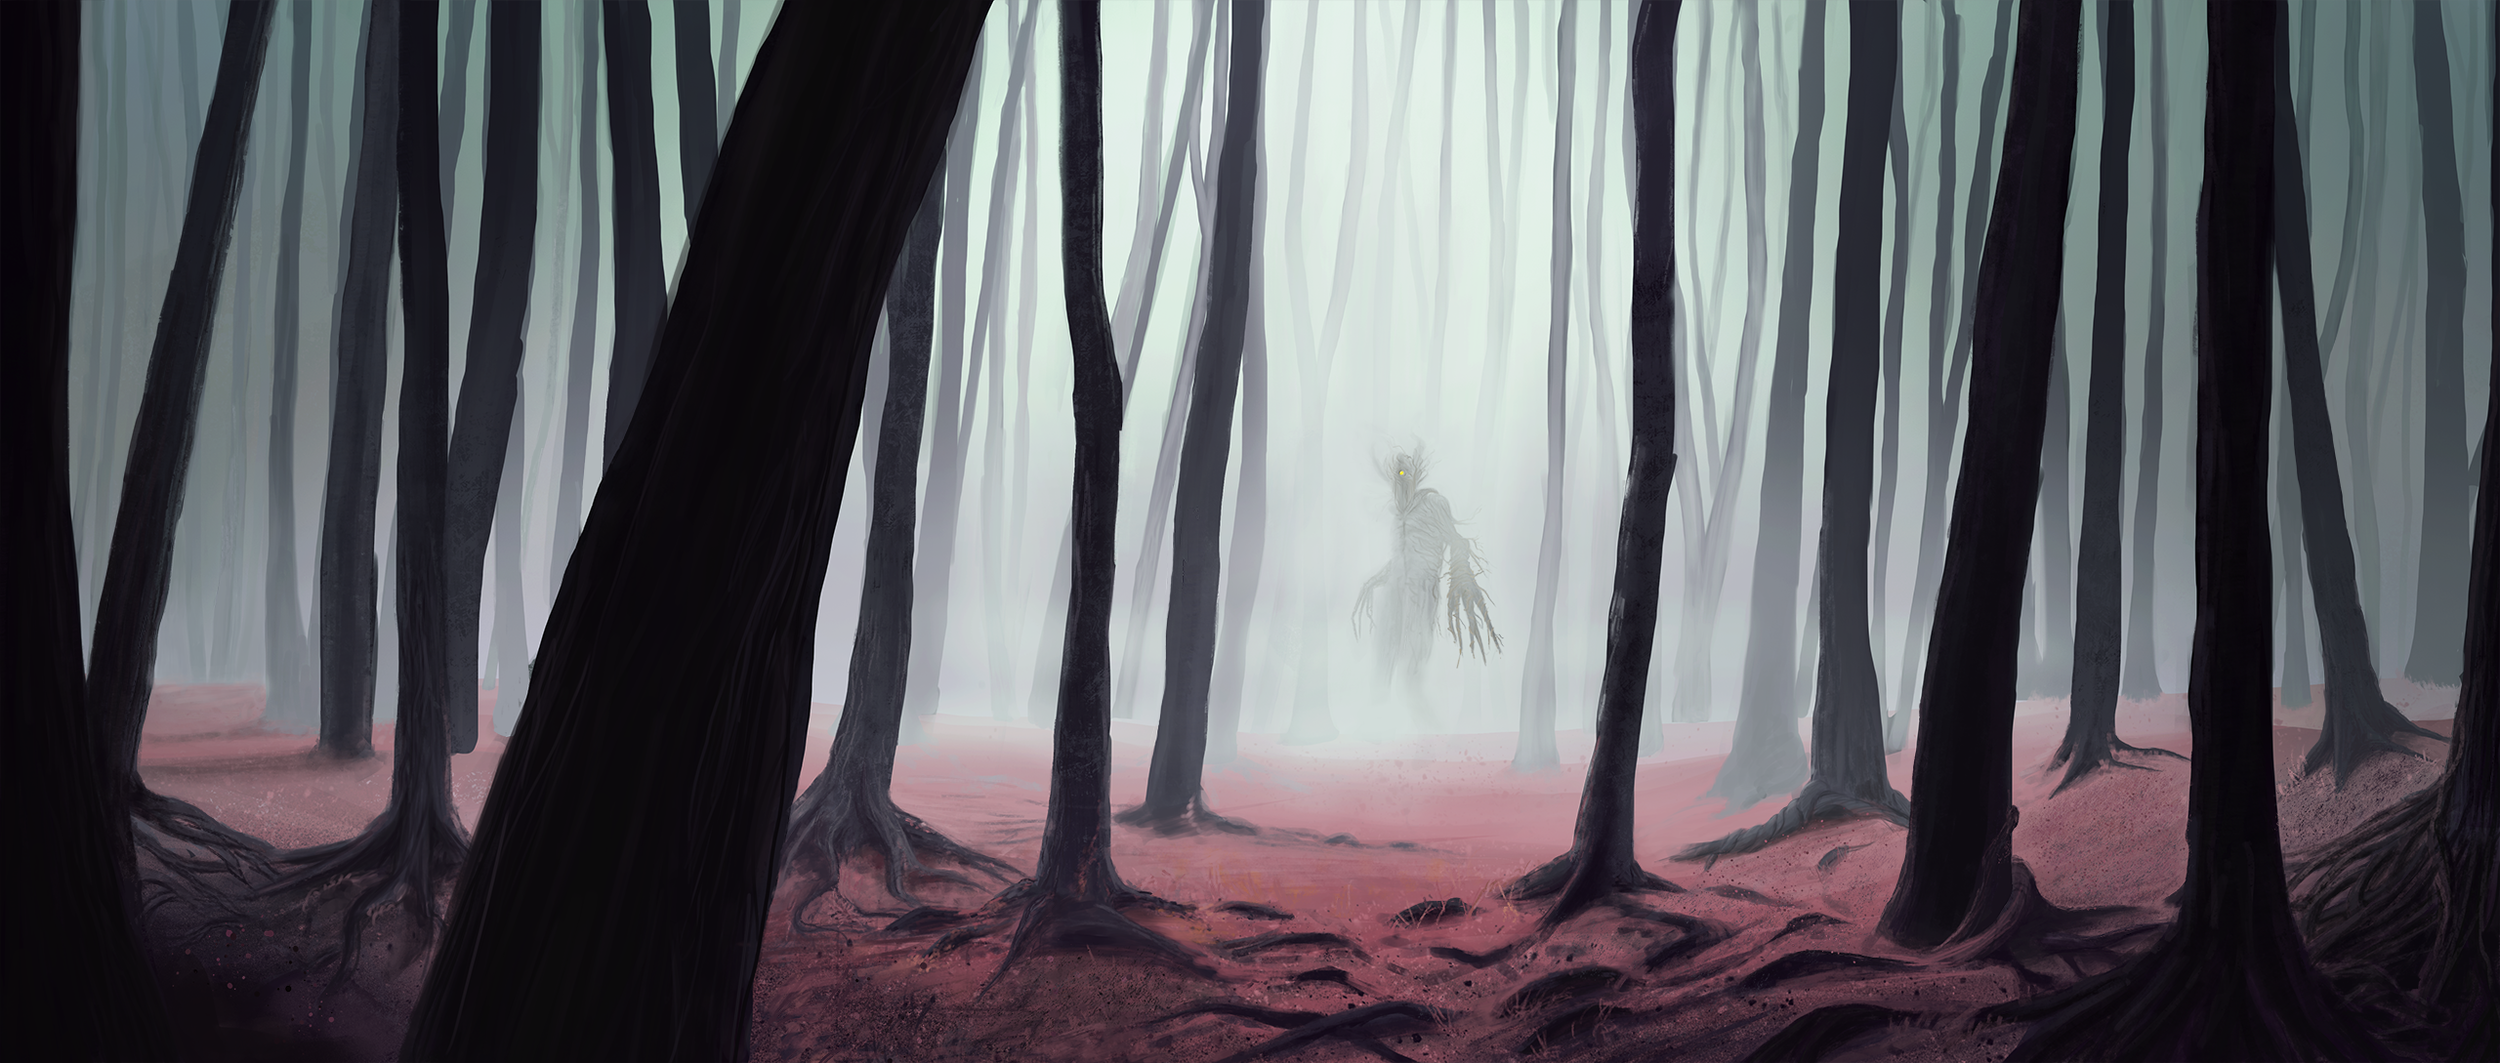 Silent Whispers: Fantasy World Designing Personal Project